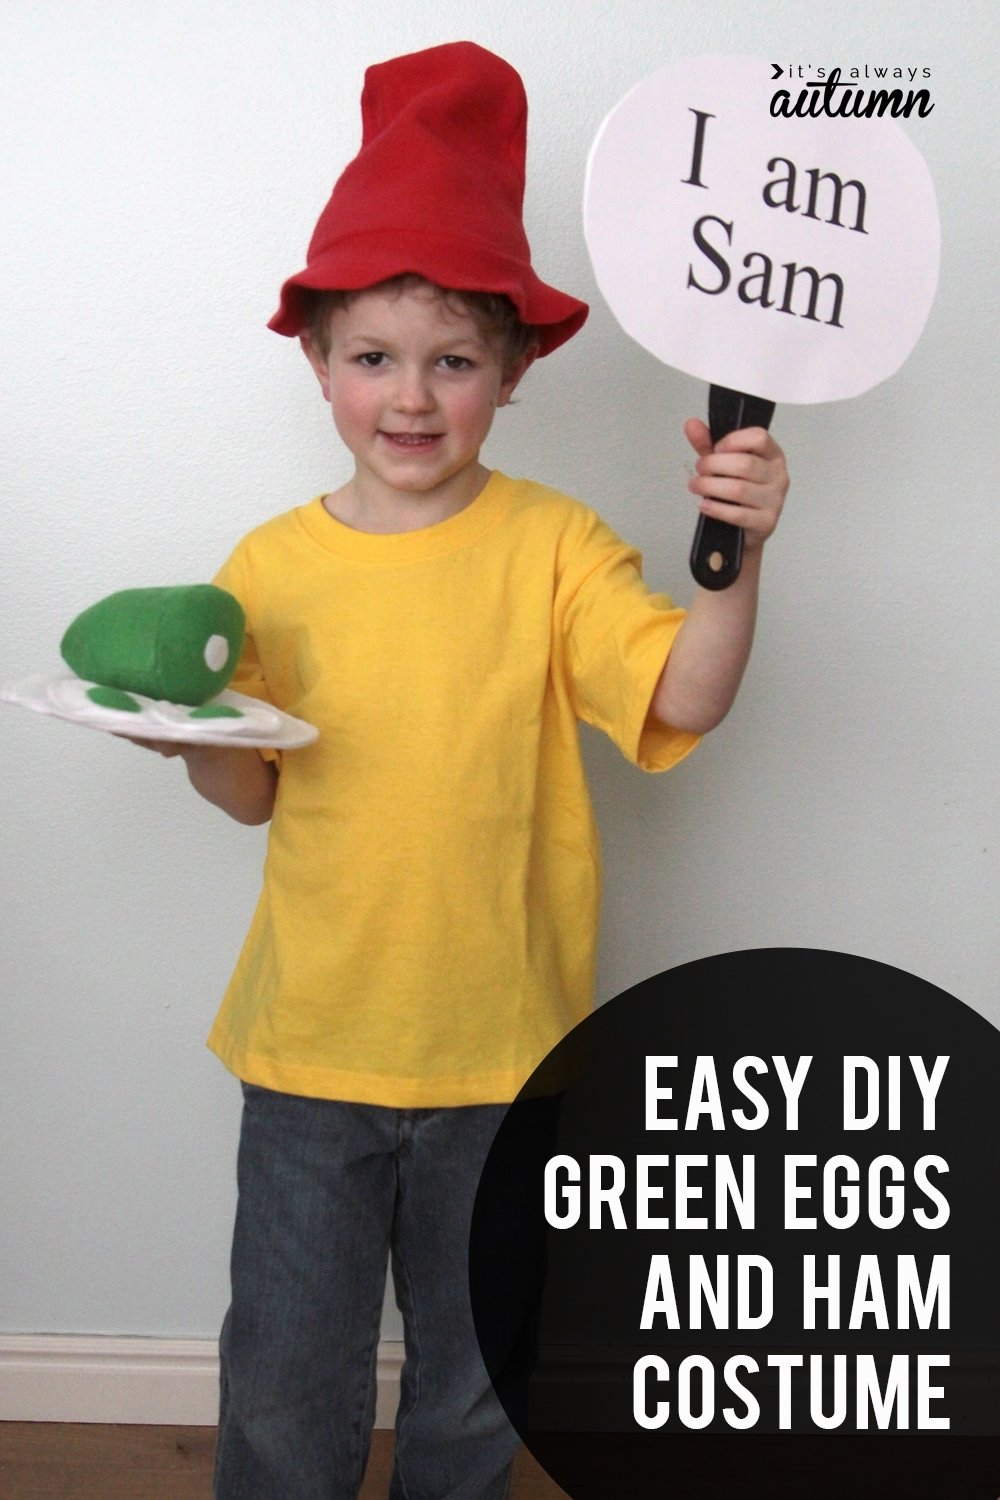 10 Stylish Dr Seuss Costume Ideas Homemade easy diy green eggs and ham costumes for dr suess day its always 5 2020